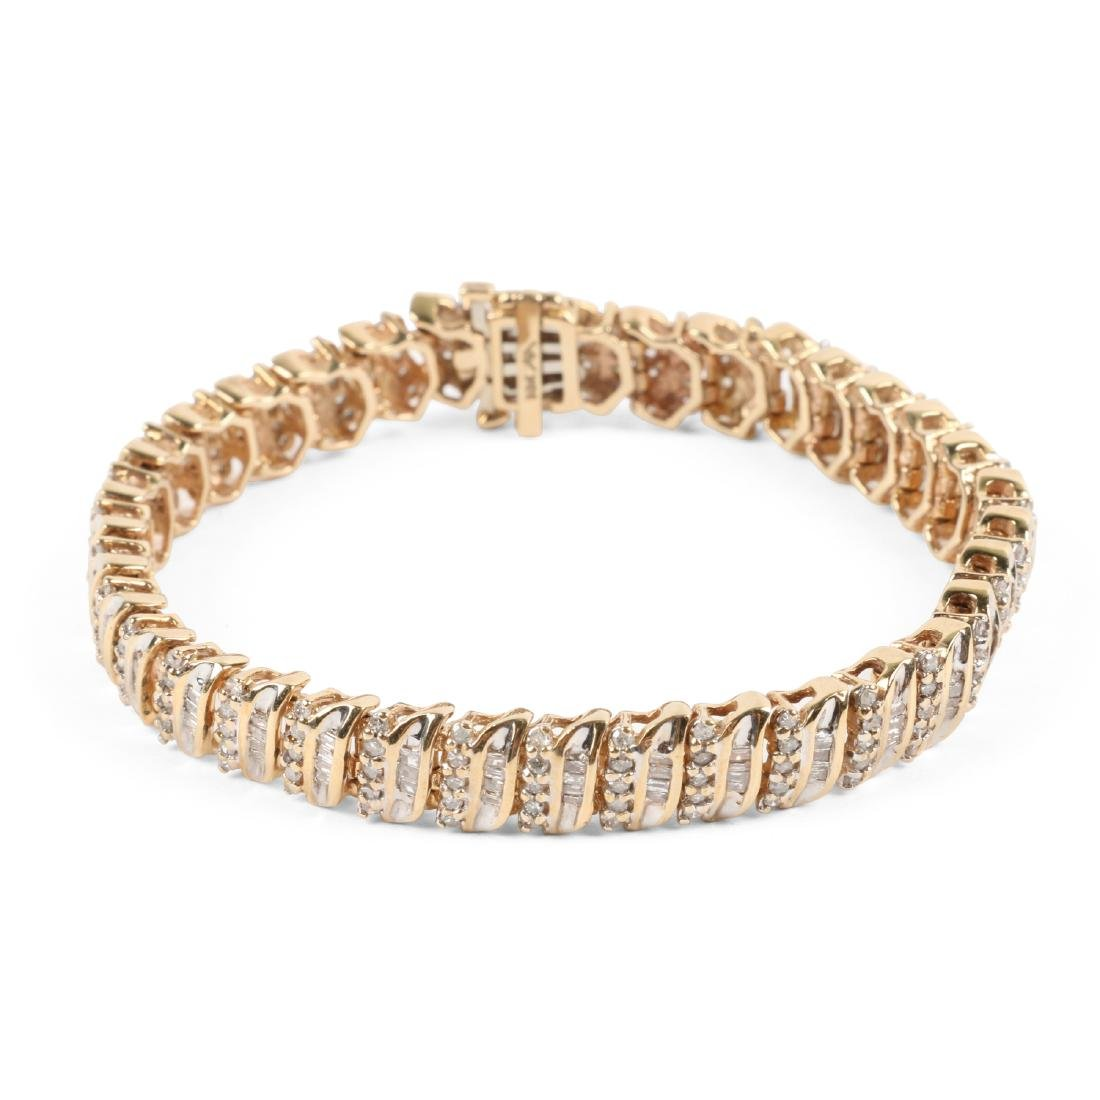 A 10K Yellow Gold, Diamond Bracelet